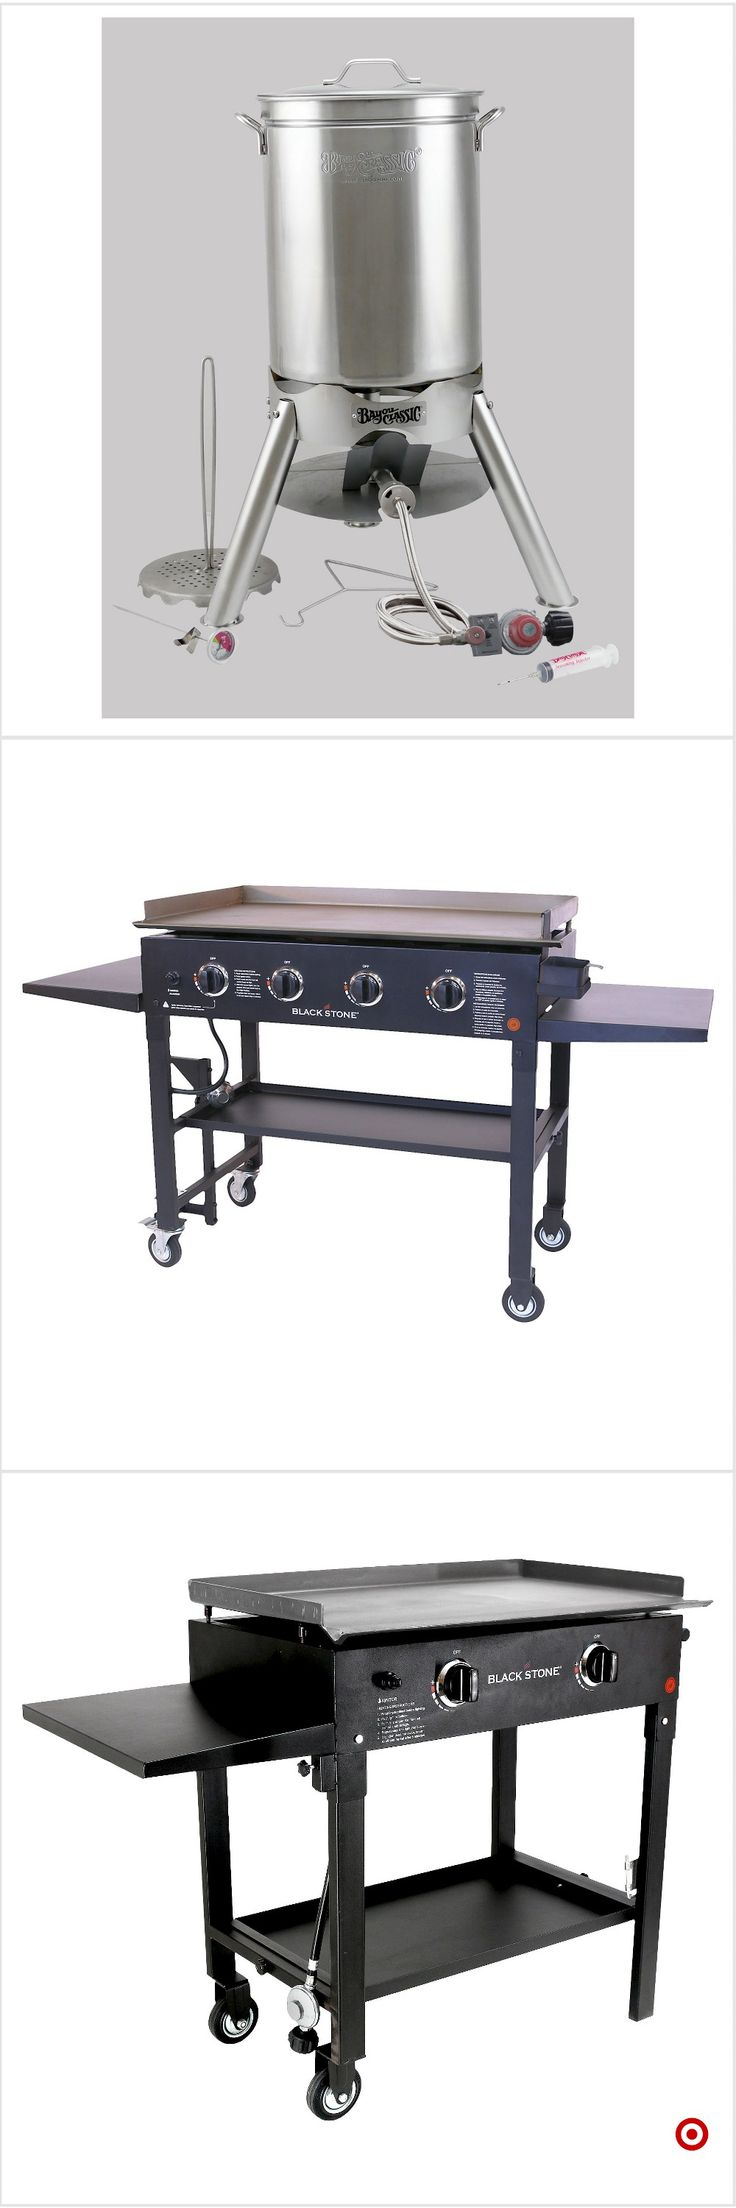 Shop Target for outdoor cooker and fryer you will love at great low prices. Free shipping on all orders or free same-day pick-up in store.